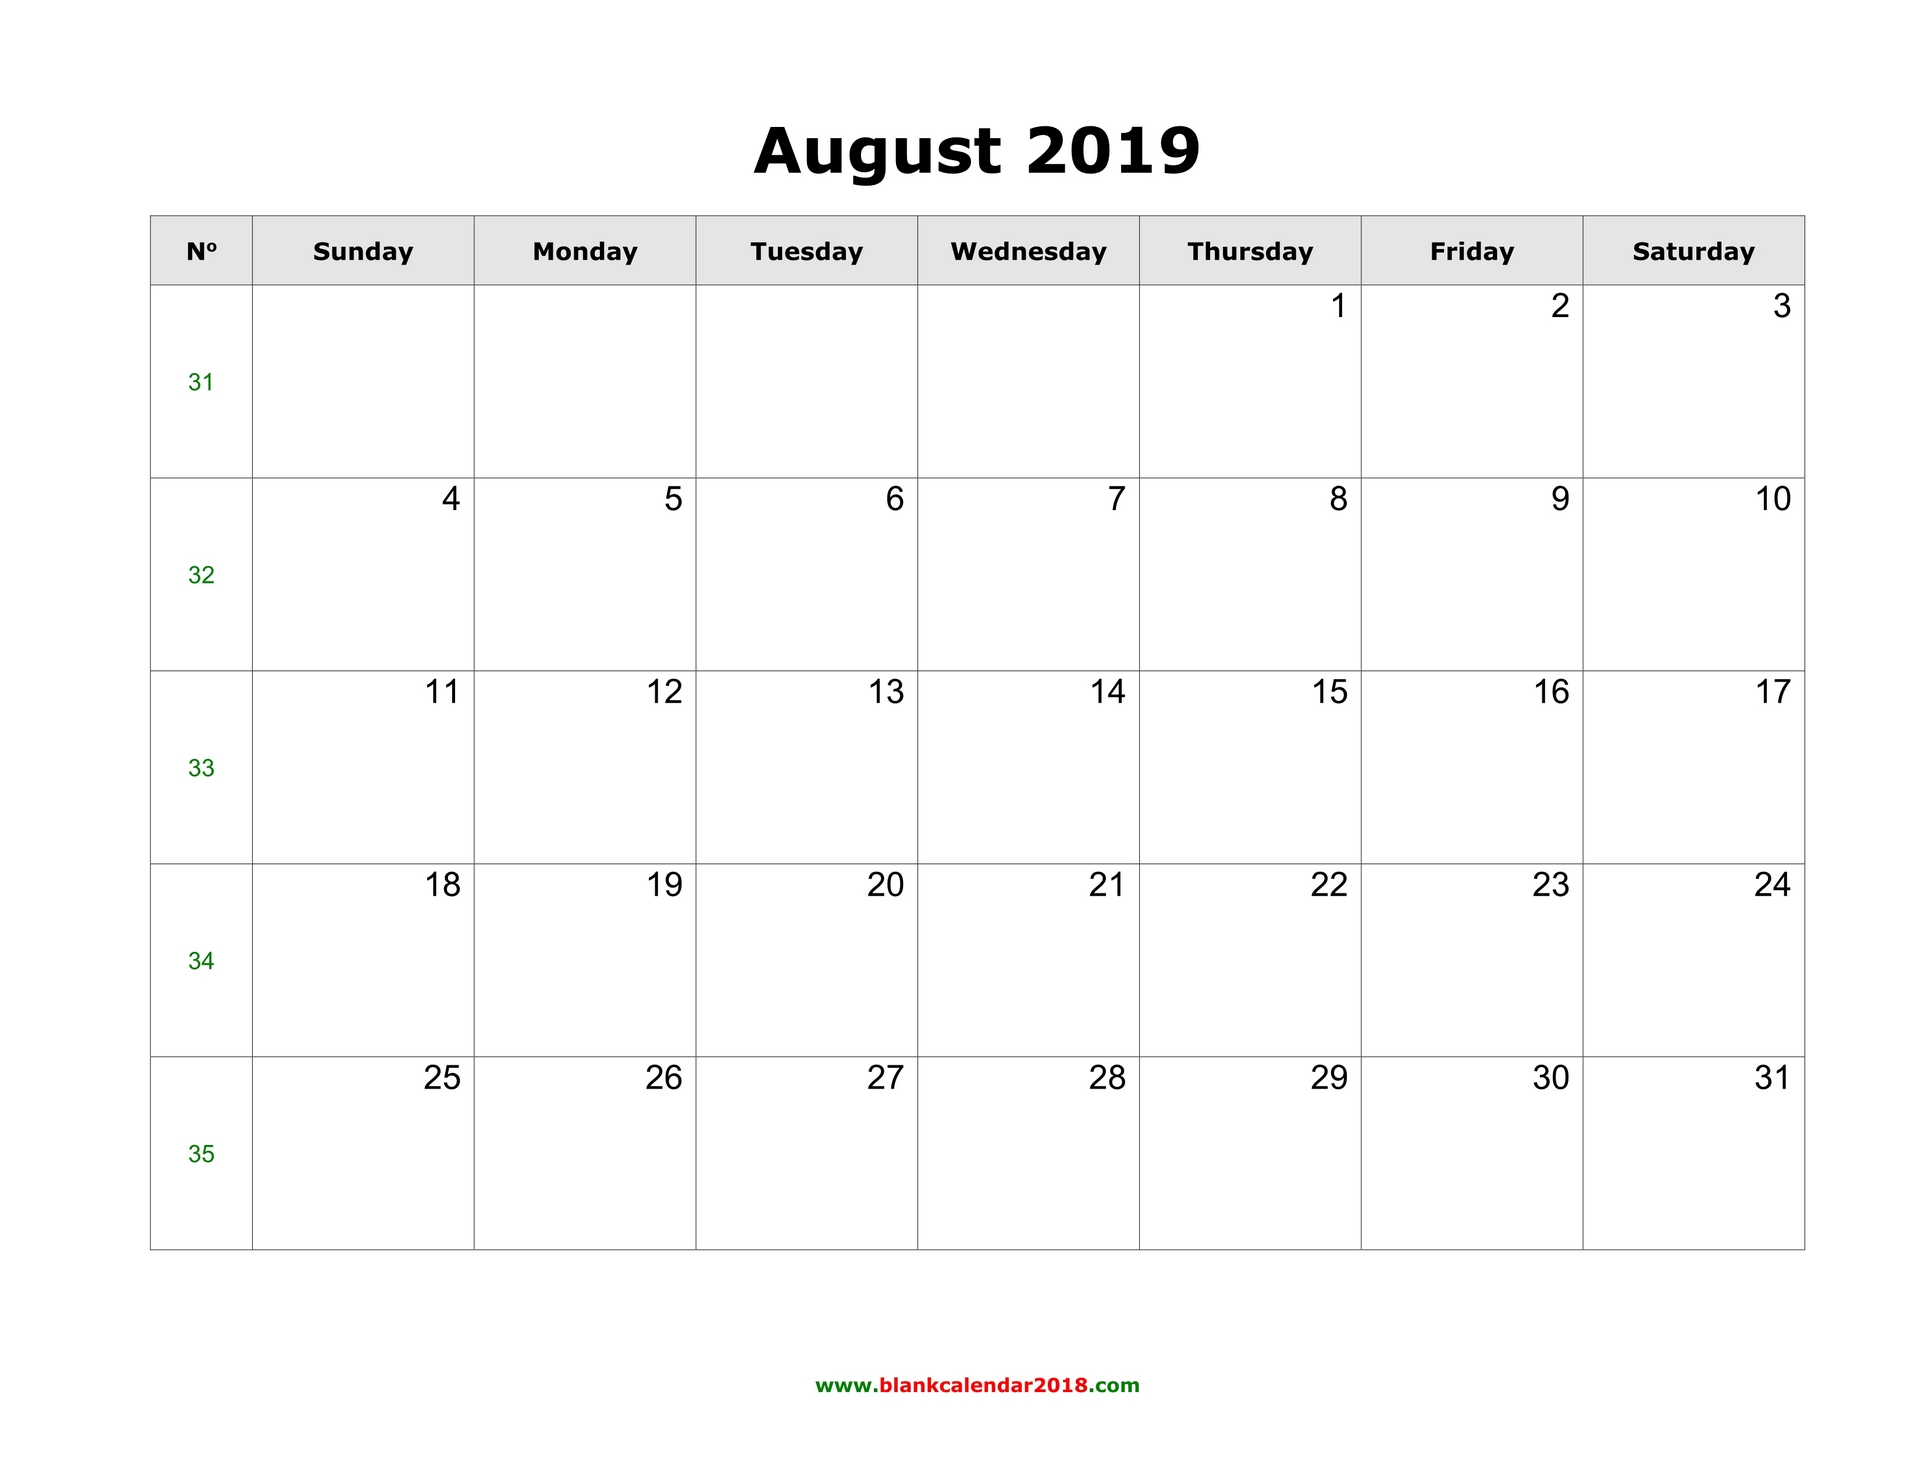 Blank Calendar For August 2019 within Blank Calender Of August